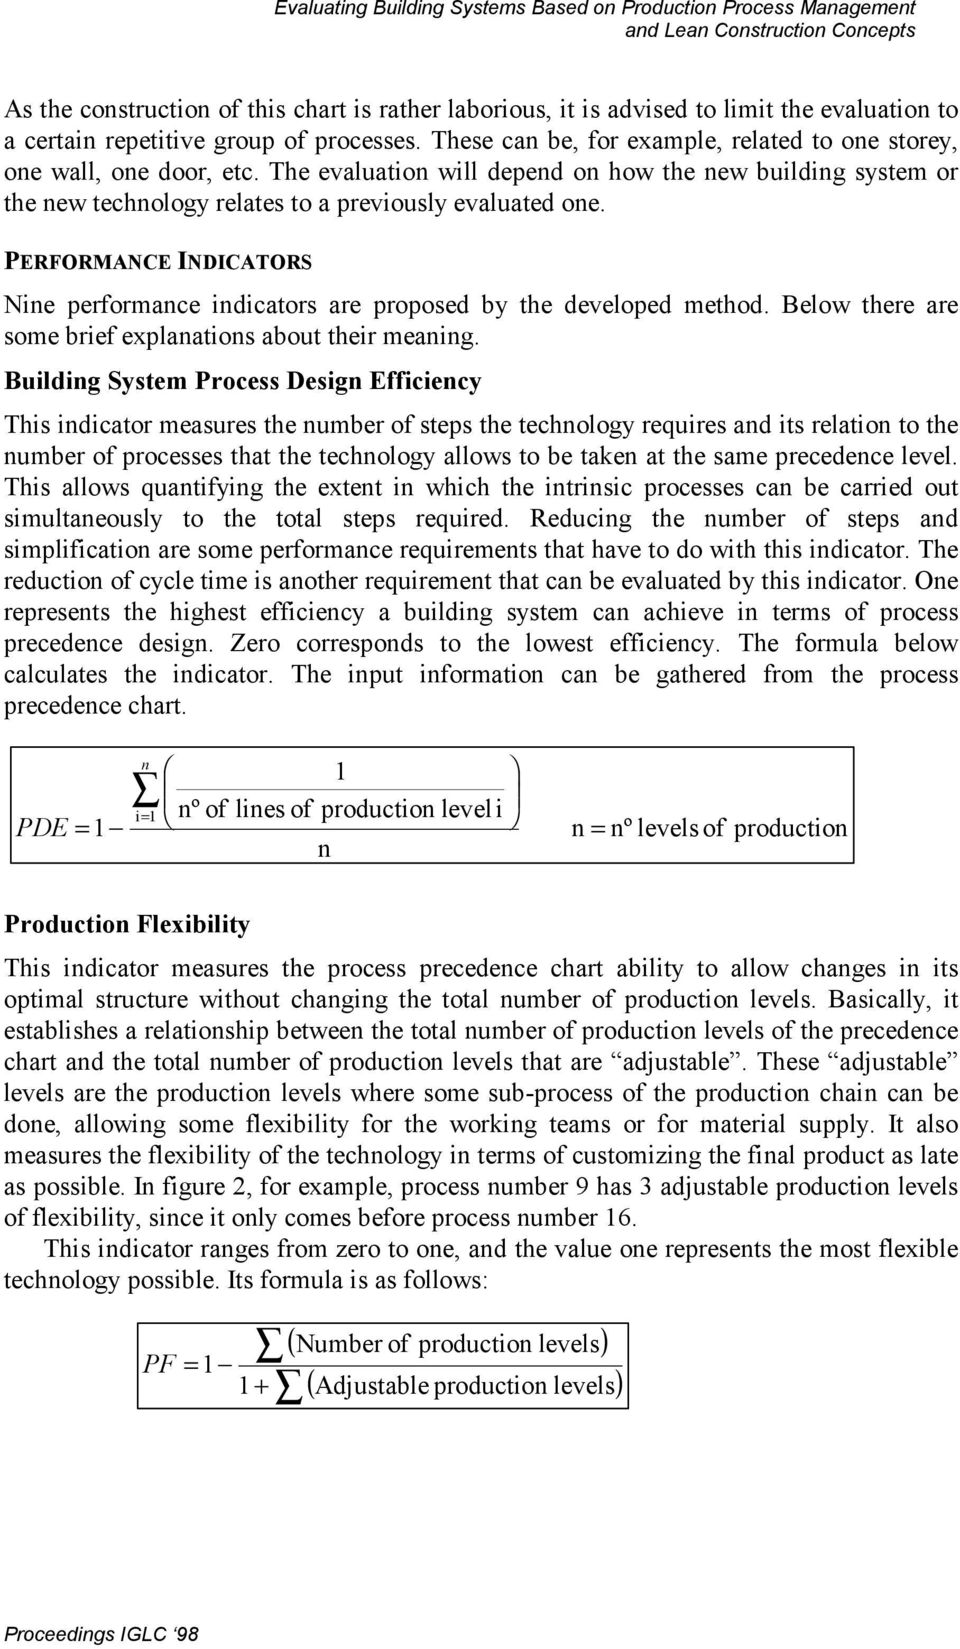 EVALUATING BUILDING SYSTEMS BASED ON PRODUCTION PROCESS